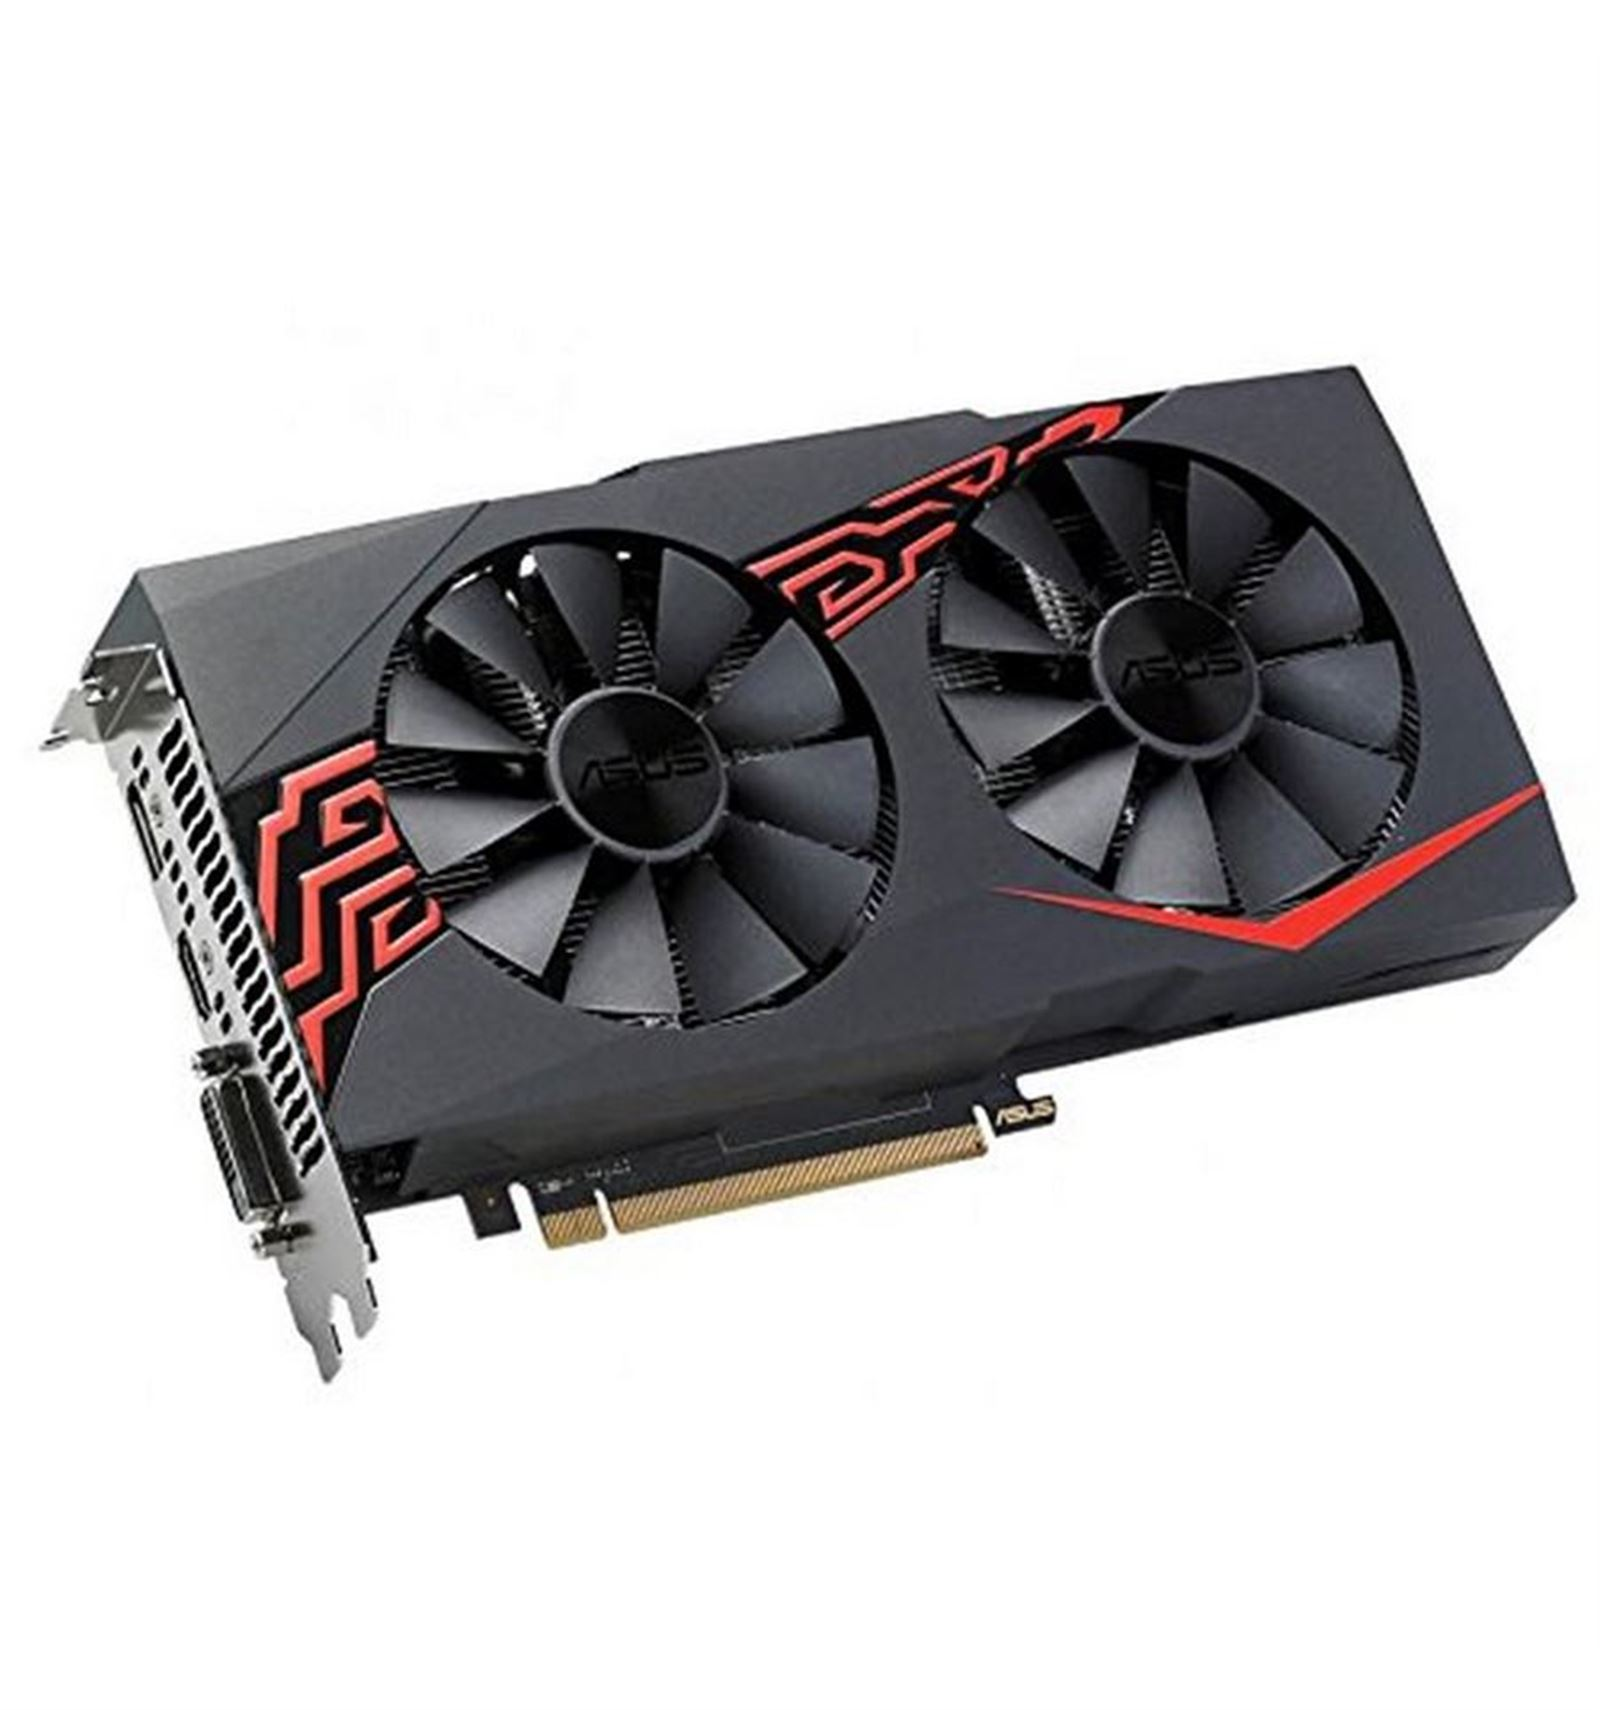 Asus Expedition Rx 570 4gb Oc Gr 225 Fica Para Pc